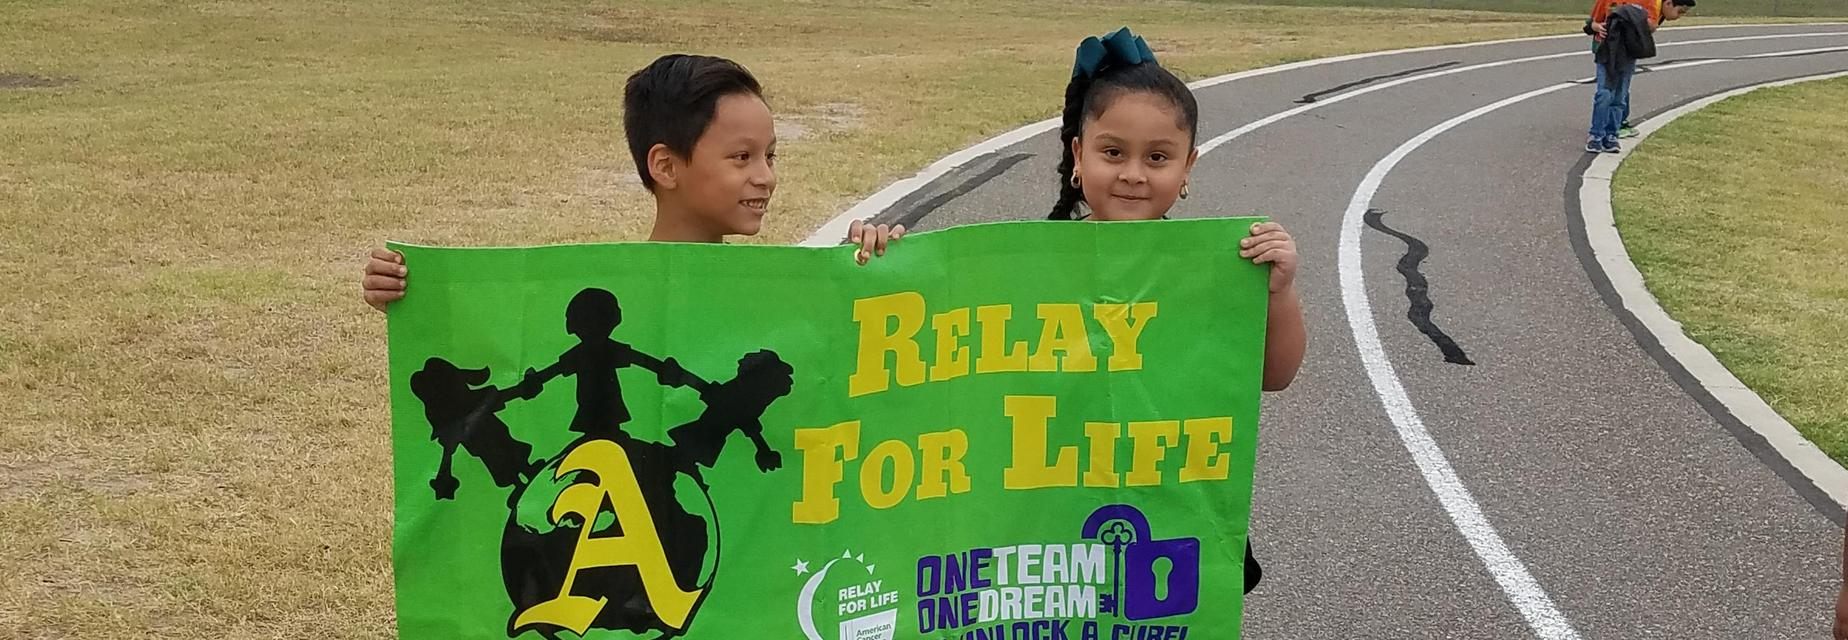 Escobar/Rios Relay for Life